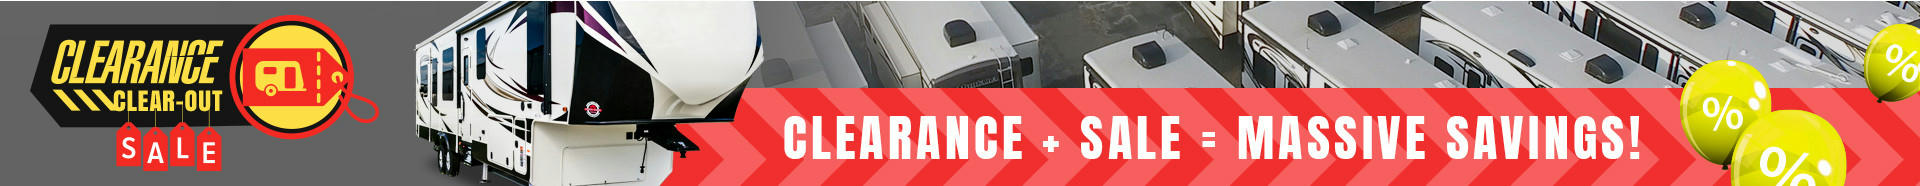 lsrv-clearance-pagebanner-top-004